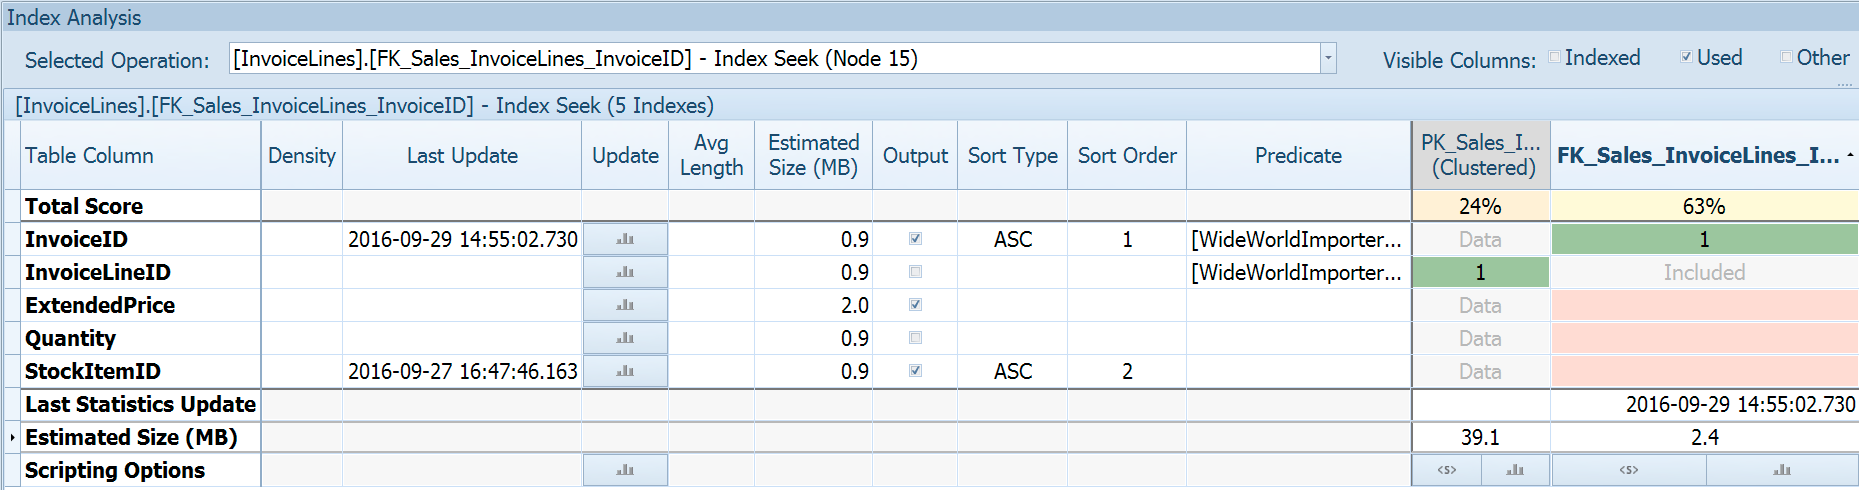 Index Analysis tab